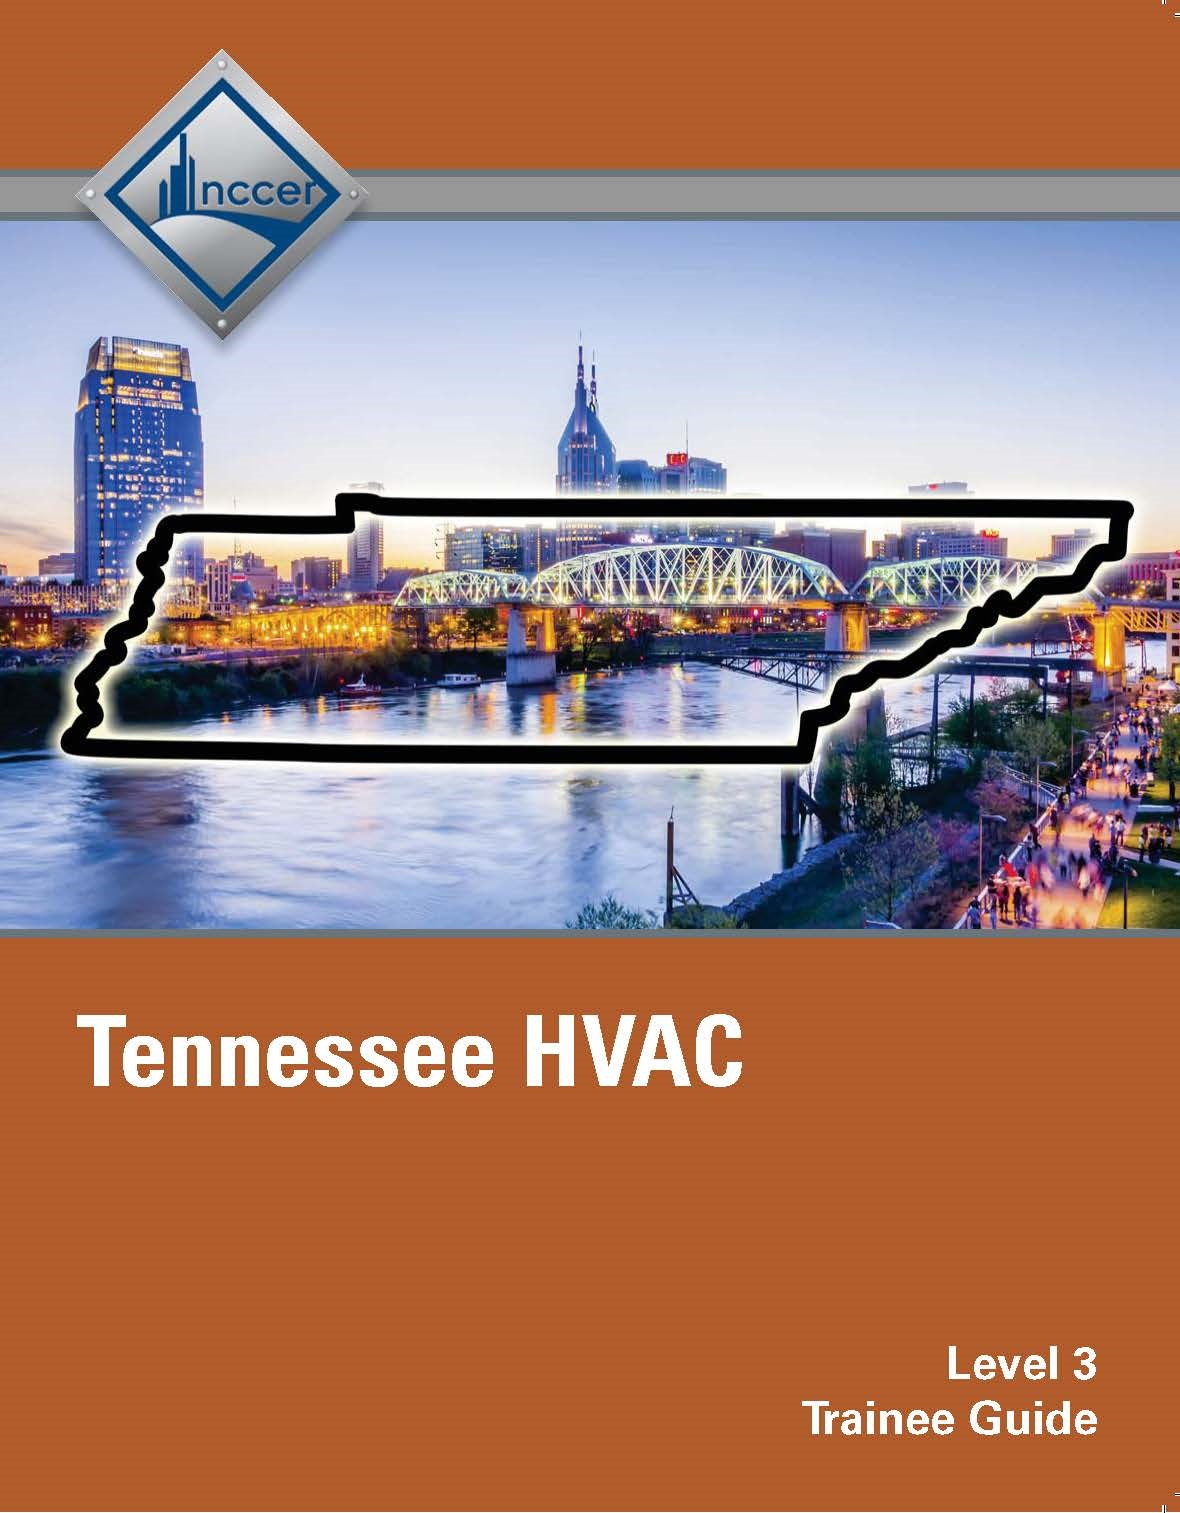 Tennessee HVAC (Level 3) Trainee Guide